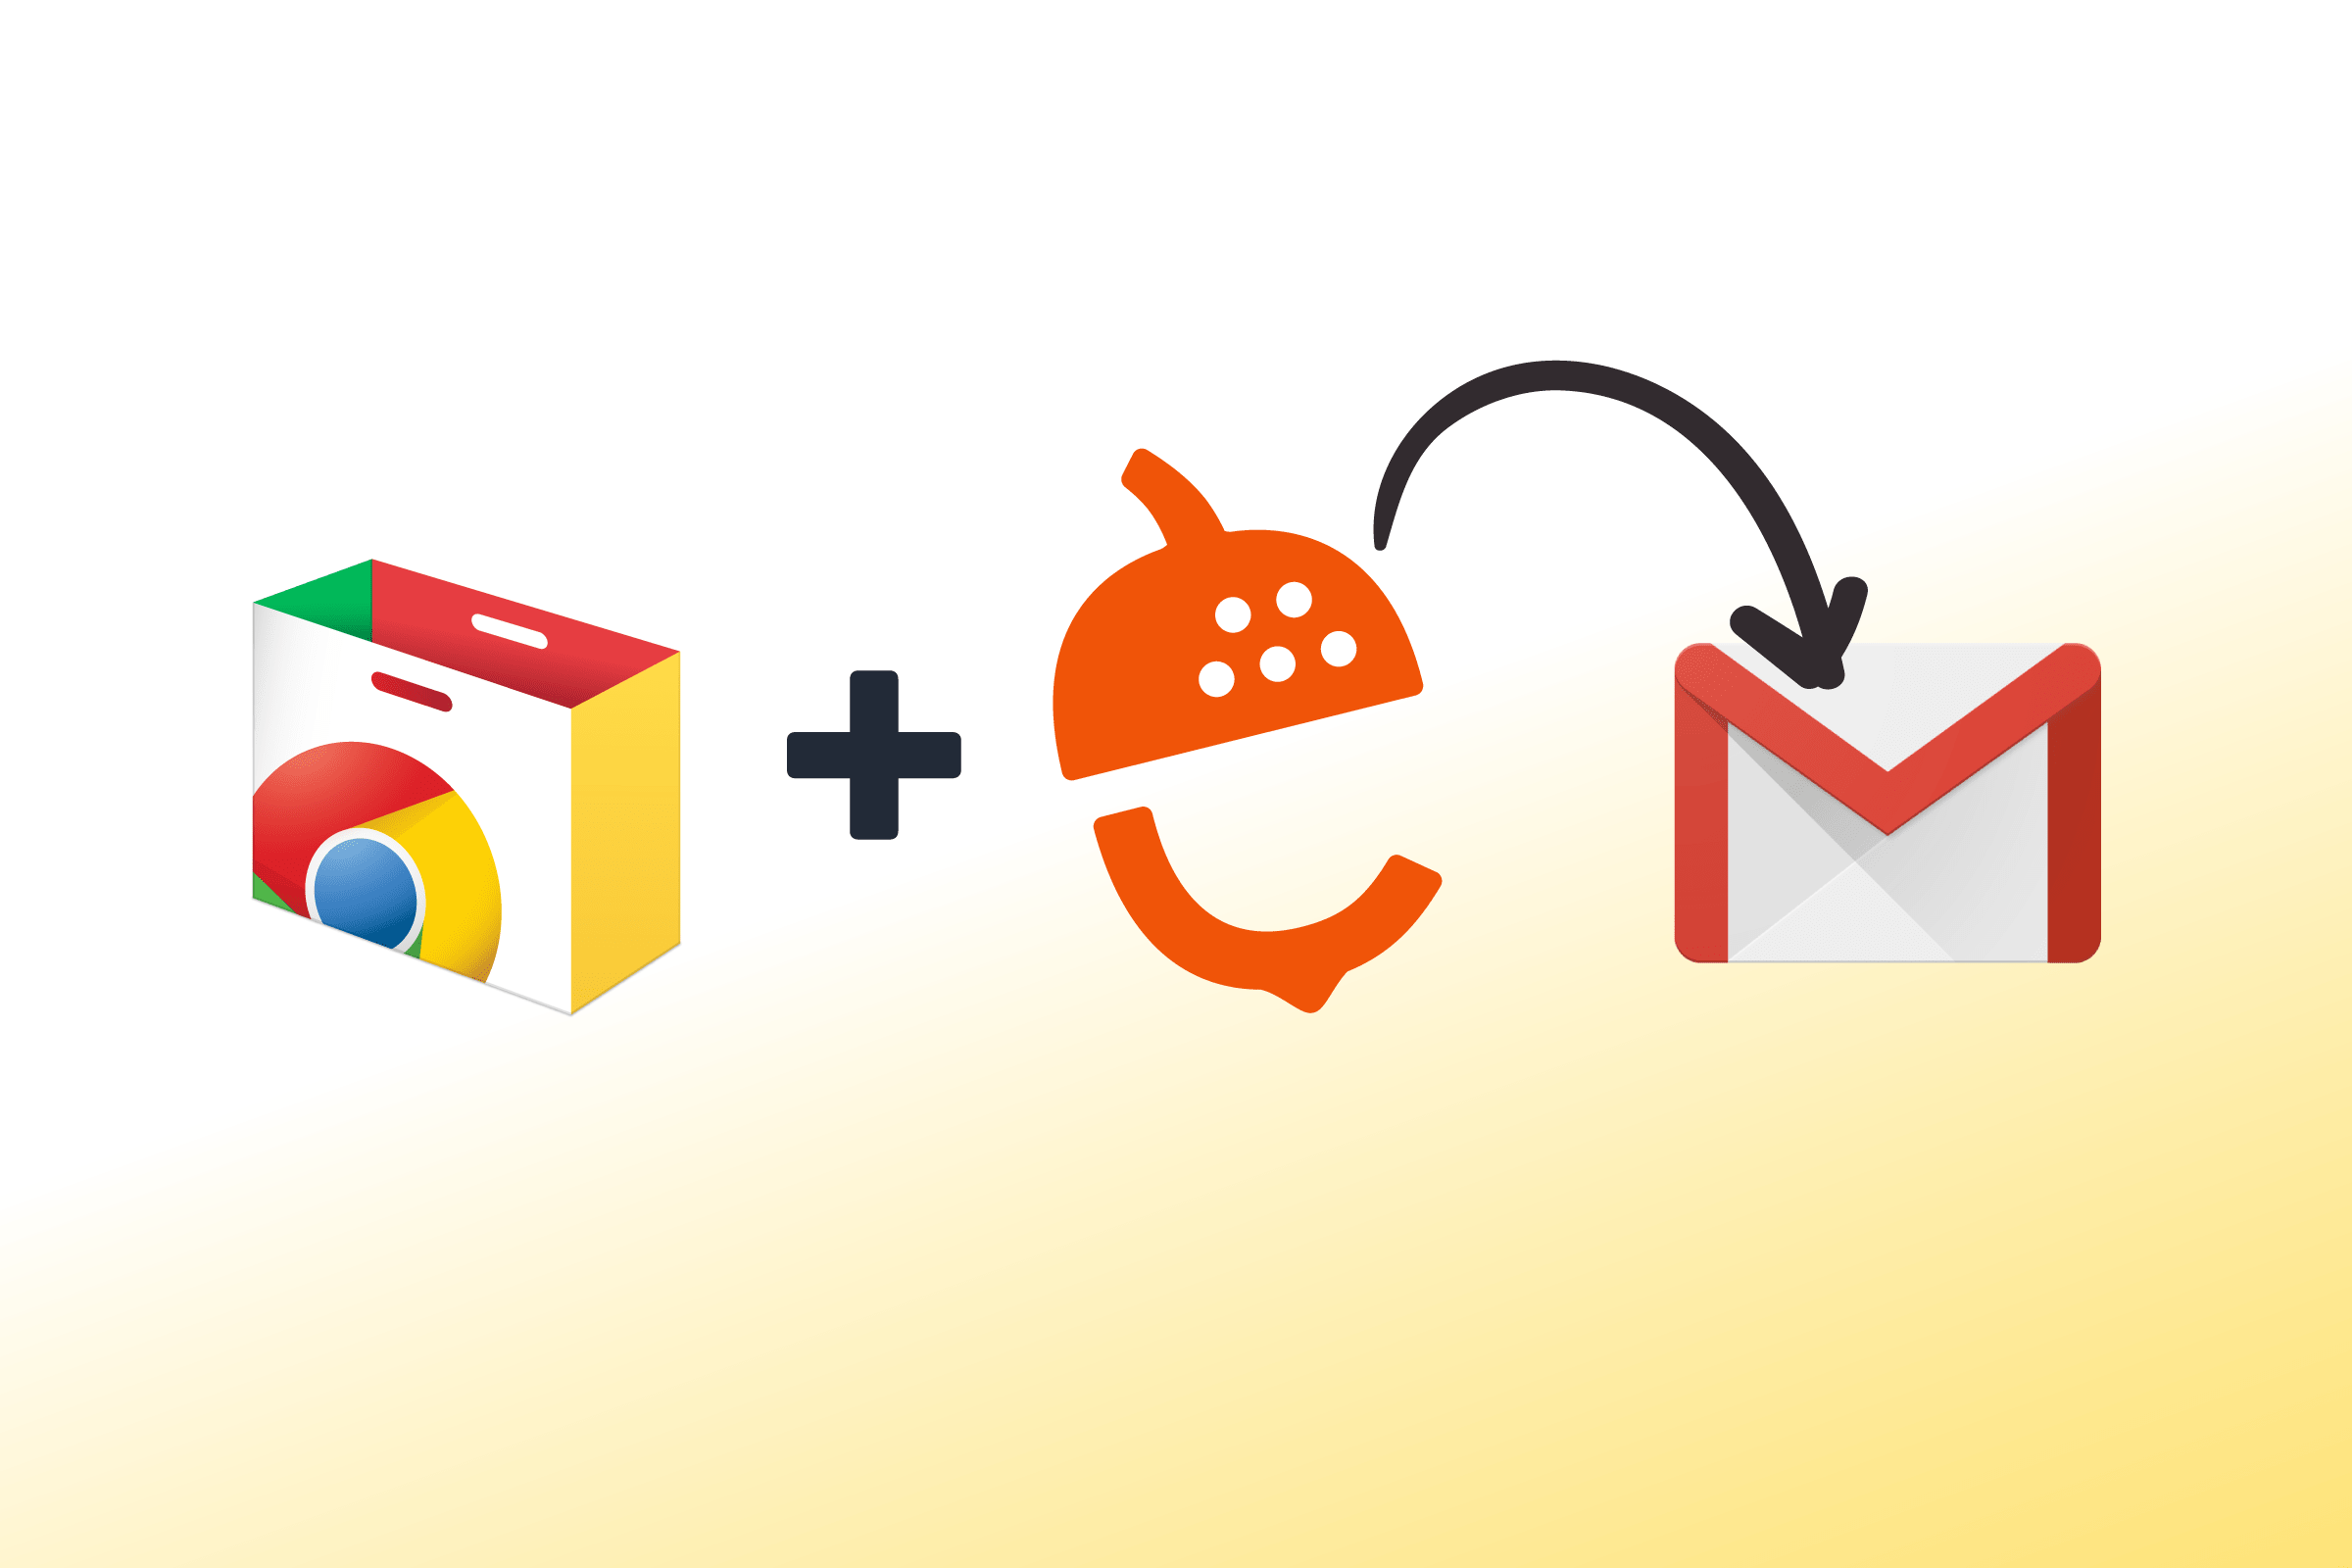 Nutshell for Gmail: Save time and stay organized with our latest